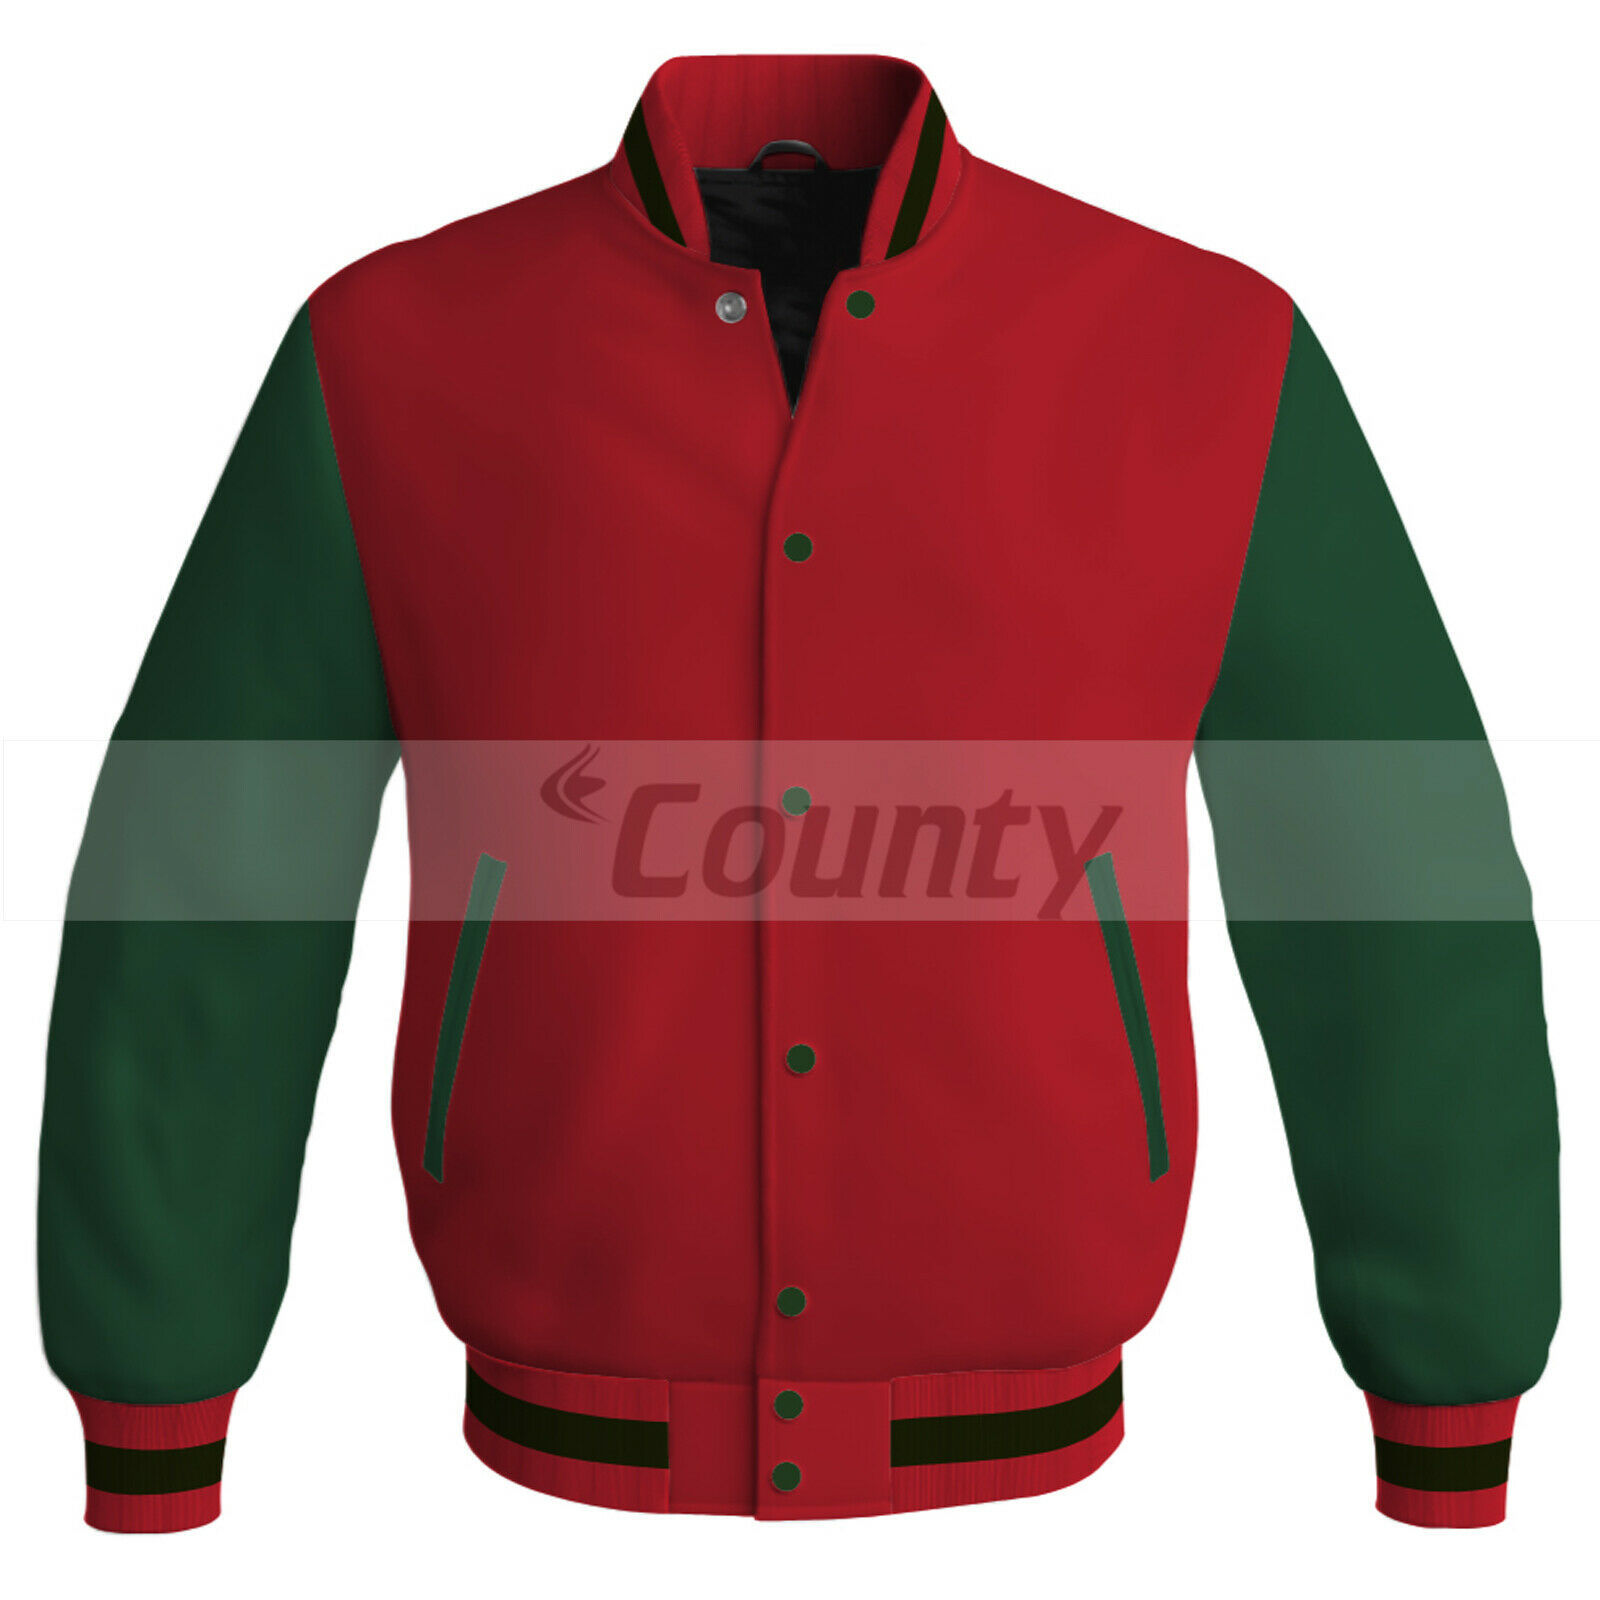 Primary image for New Letterman Baseball College Bomber Super Jacket Sports Red Forest Green Satin